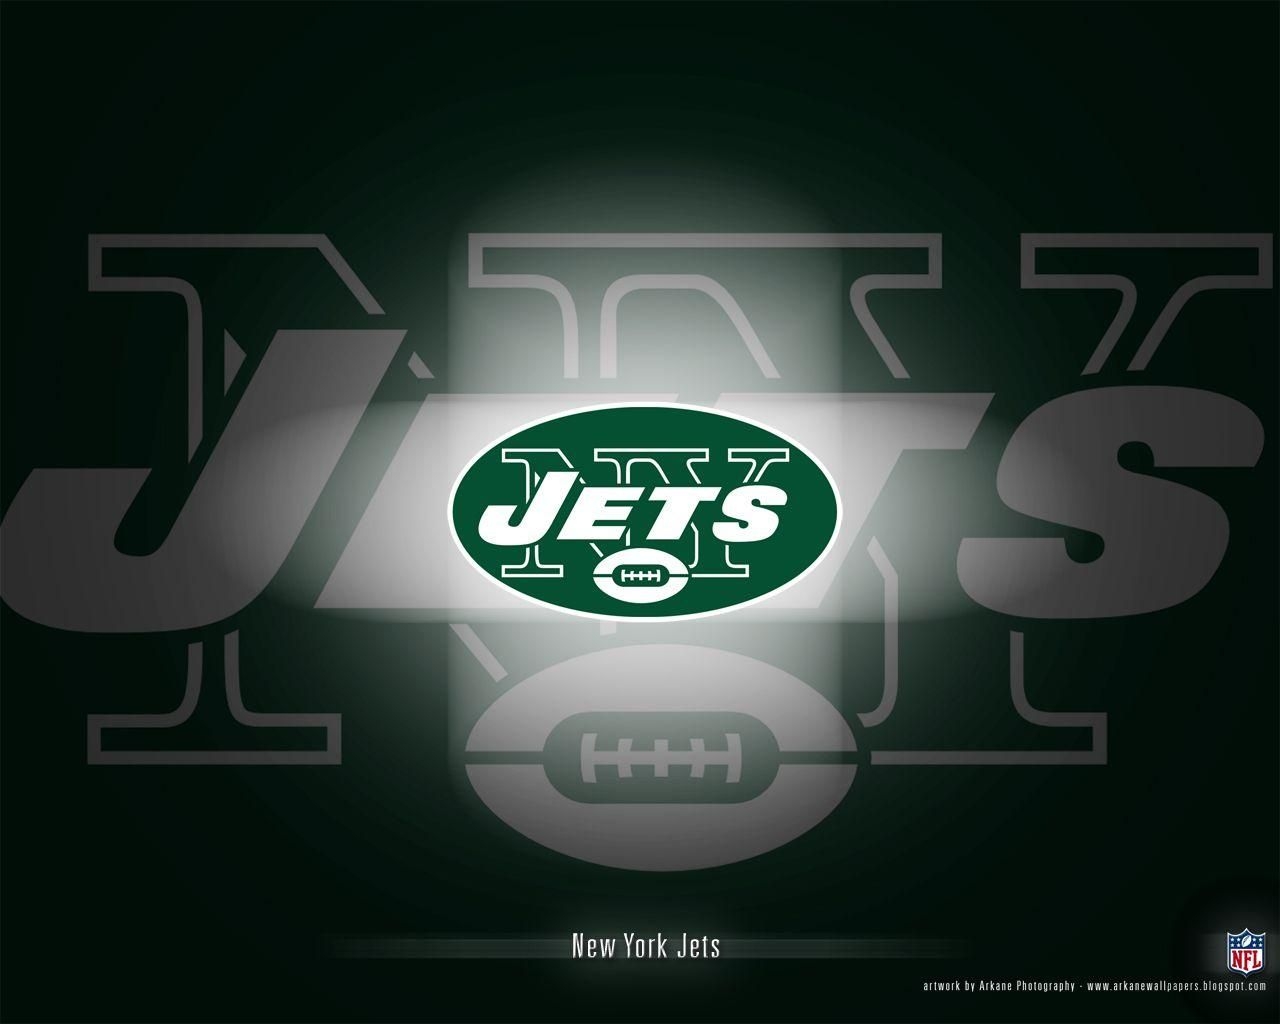 Pin By Blogger On 2020 Wallpapers In 2019 New York Jets Atlanta Braves Jet